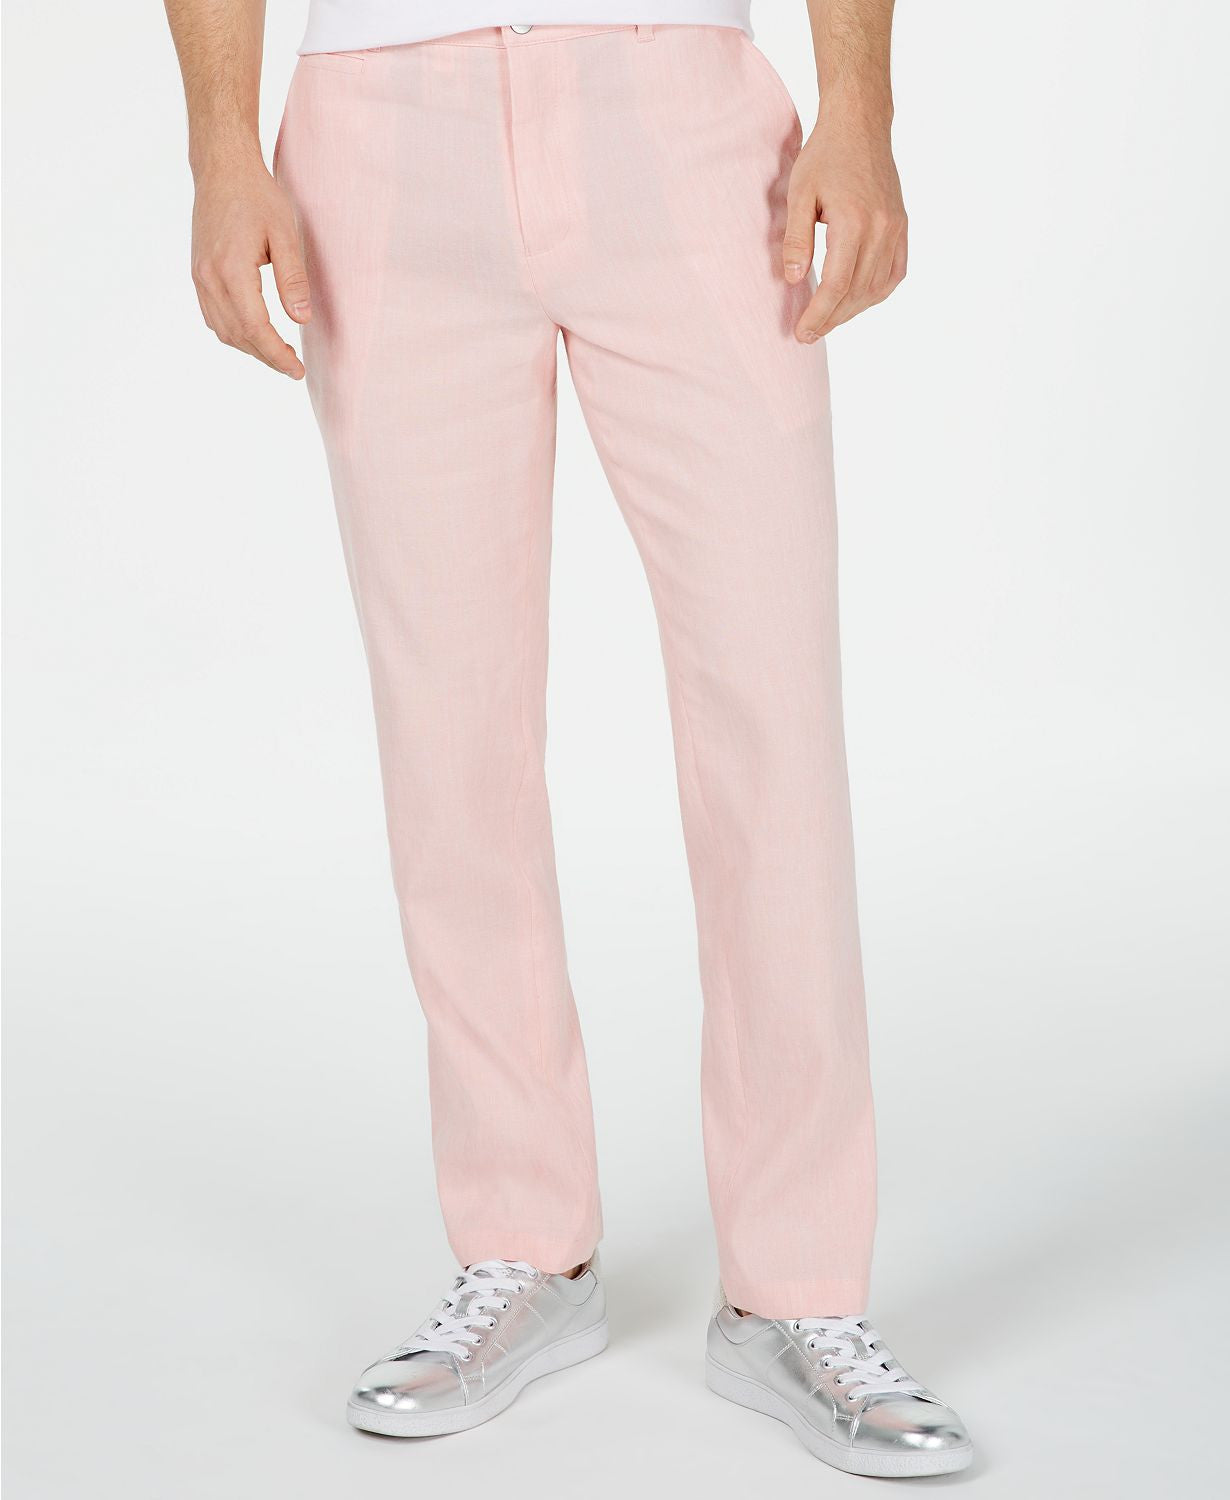 Inc International Concepts Slim Fit Stretch Linen Pants / Coral Combo